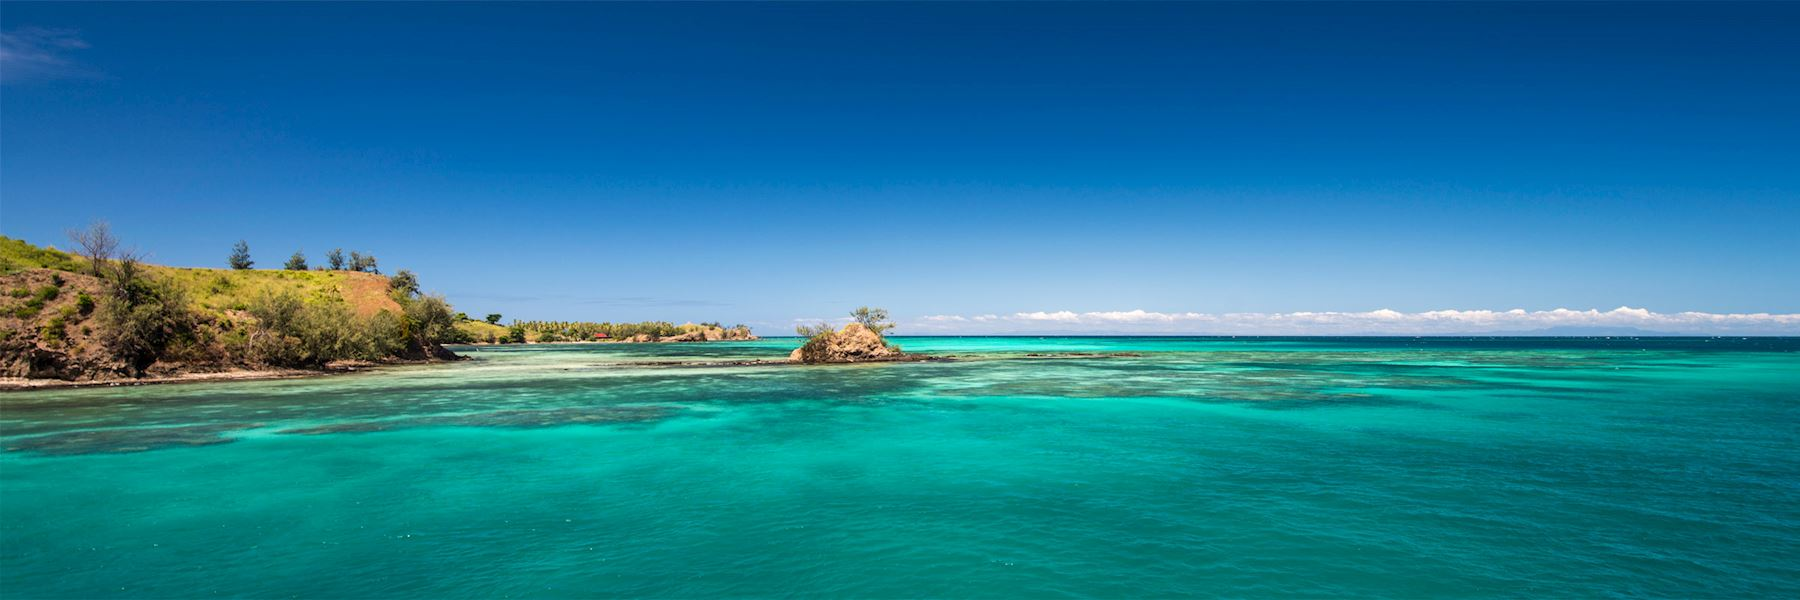 When is the best time to visit Fiji?